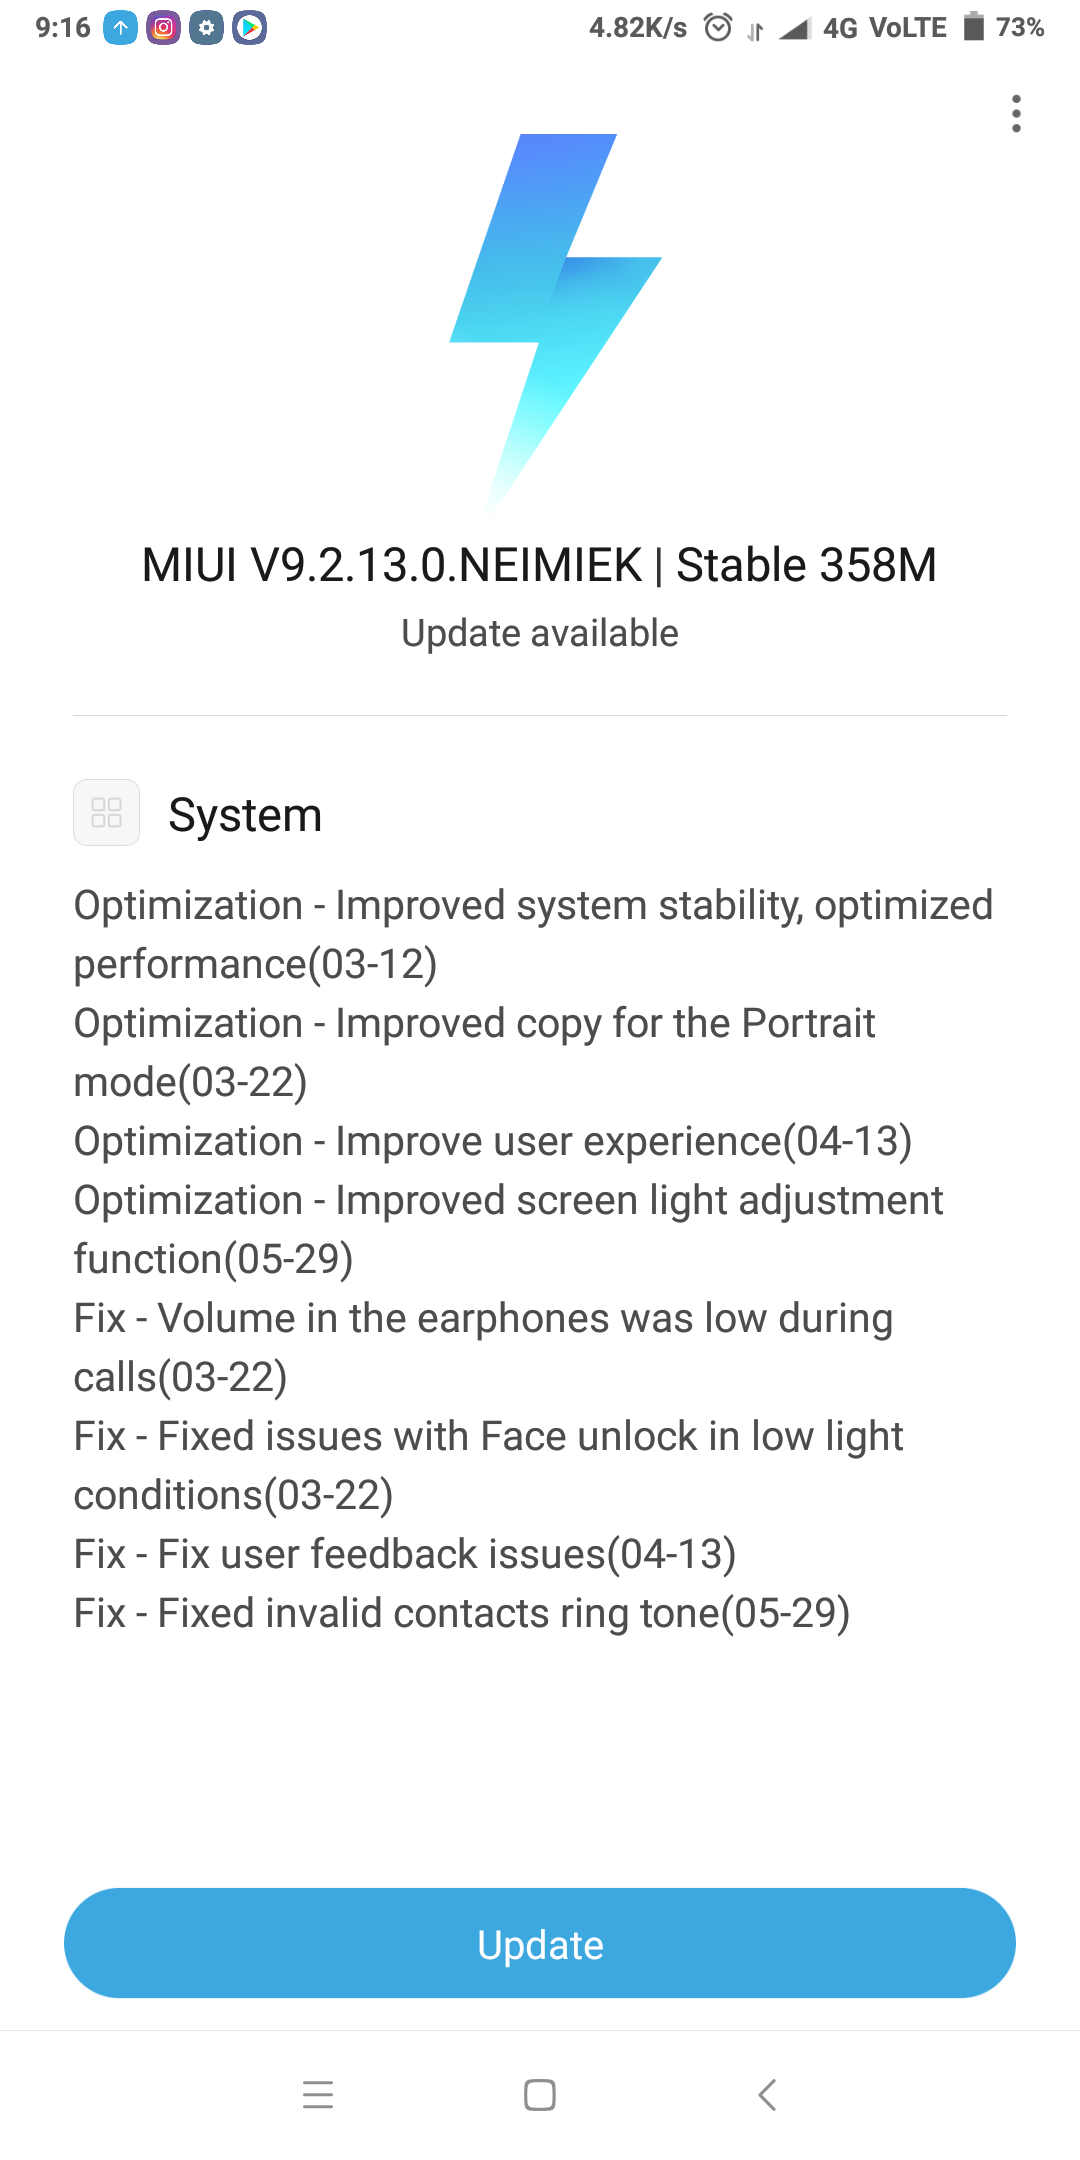 What are the new features in MIUI 9 2 13 0 update? - Quora